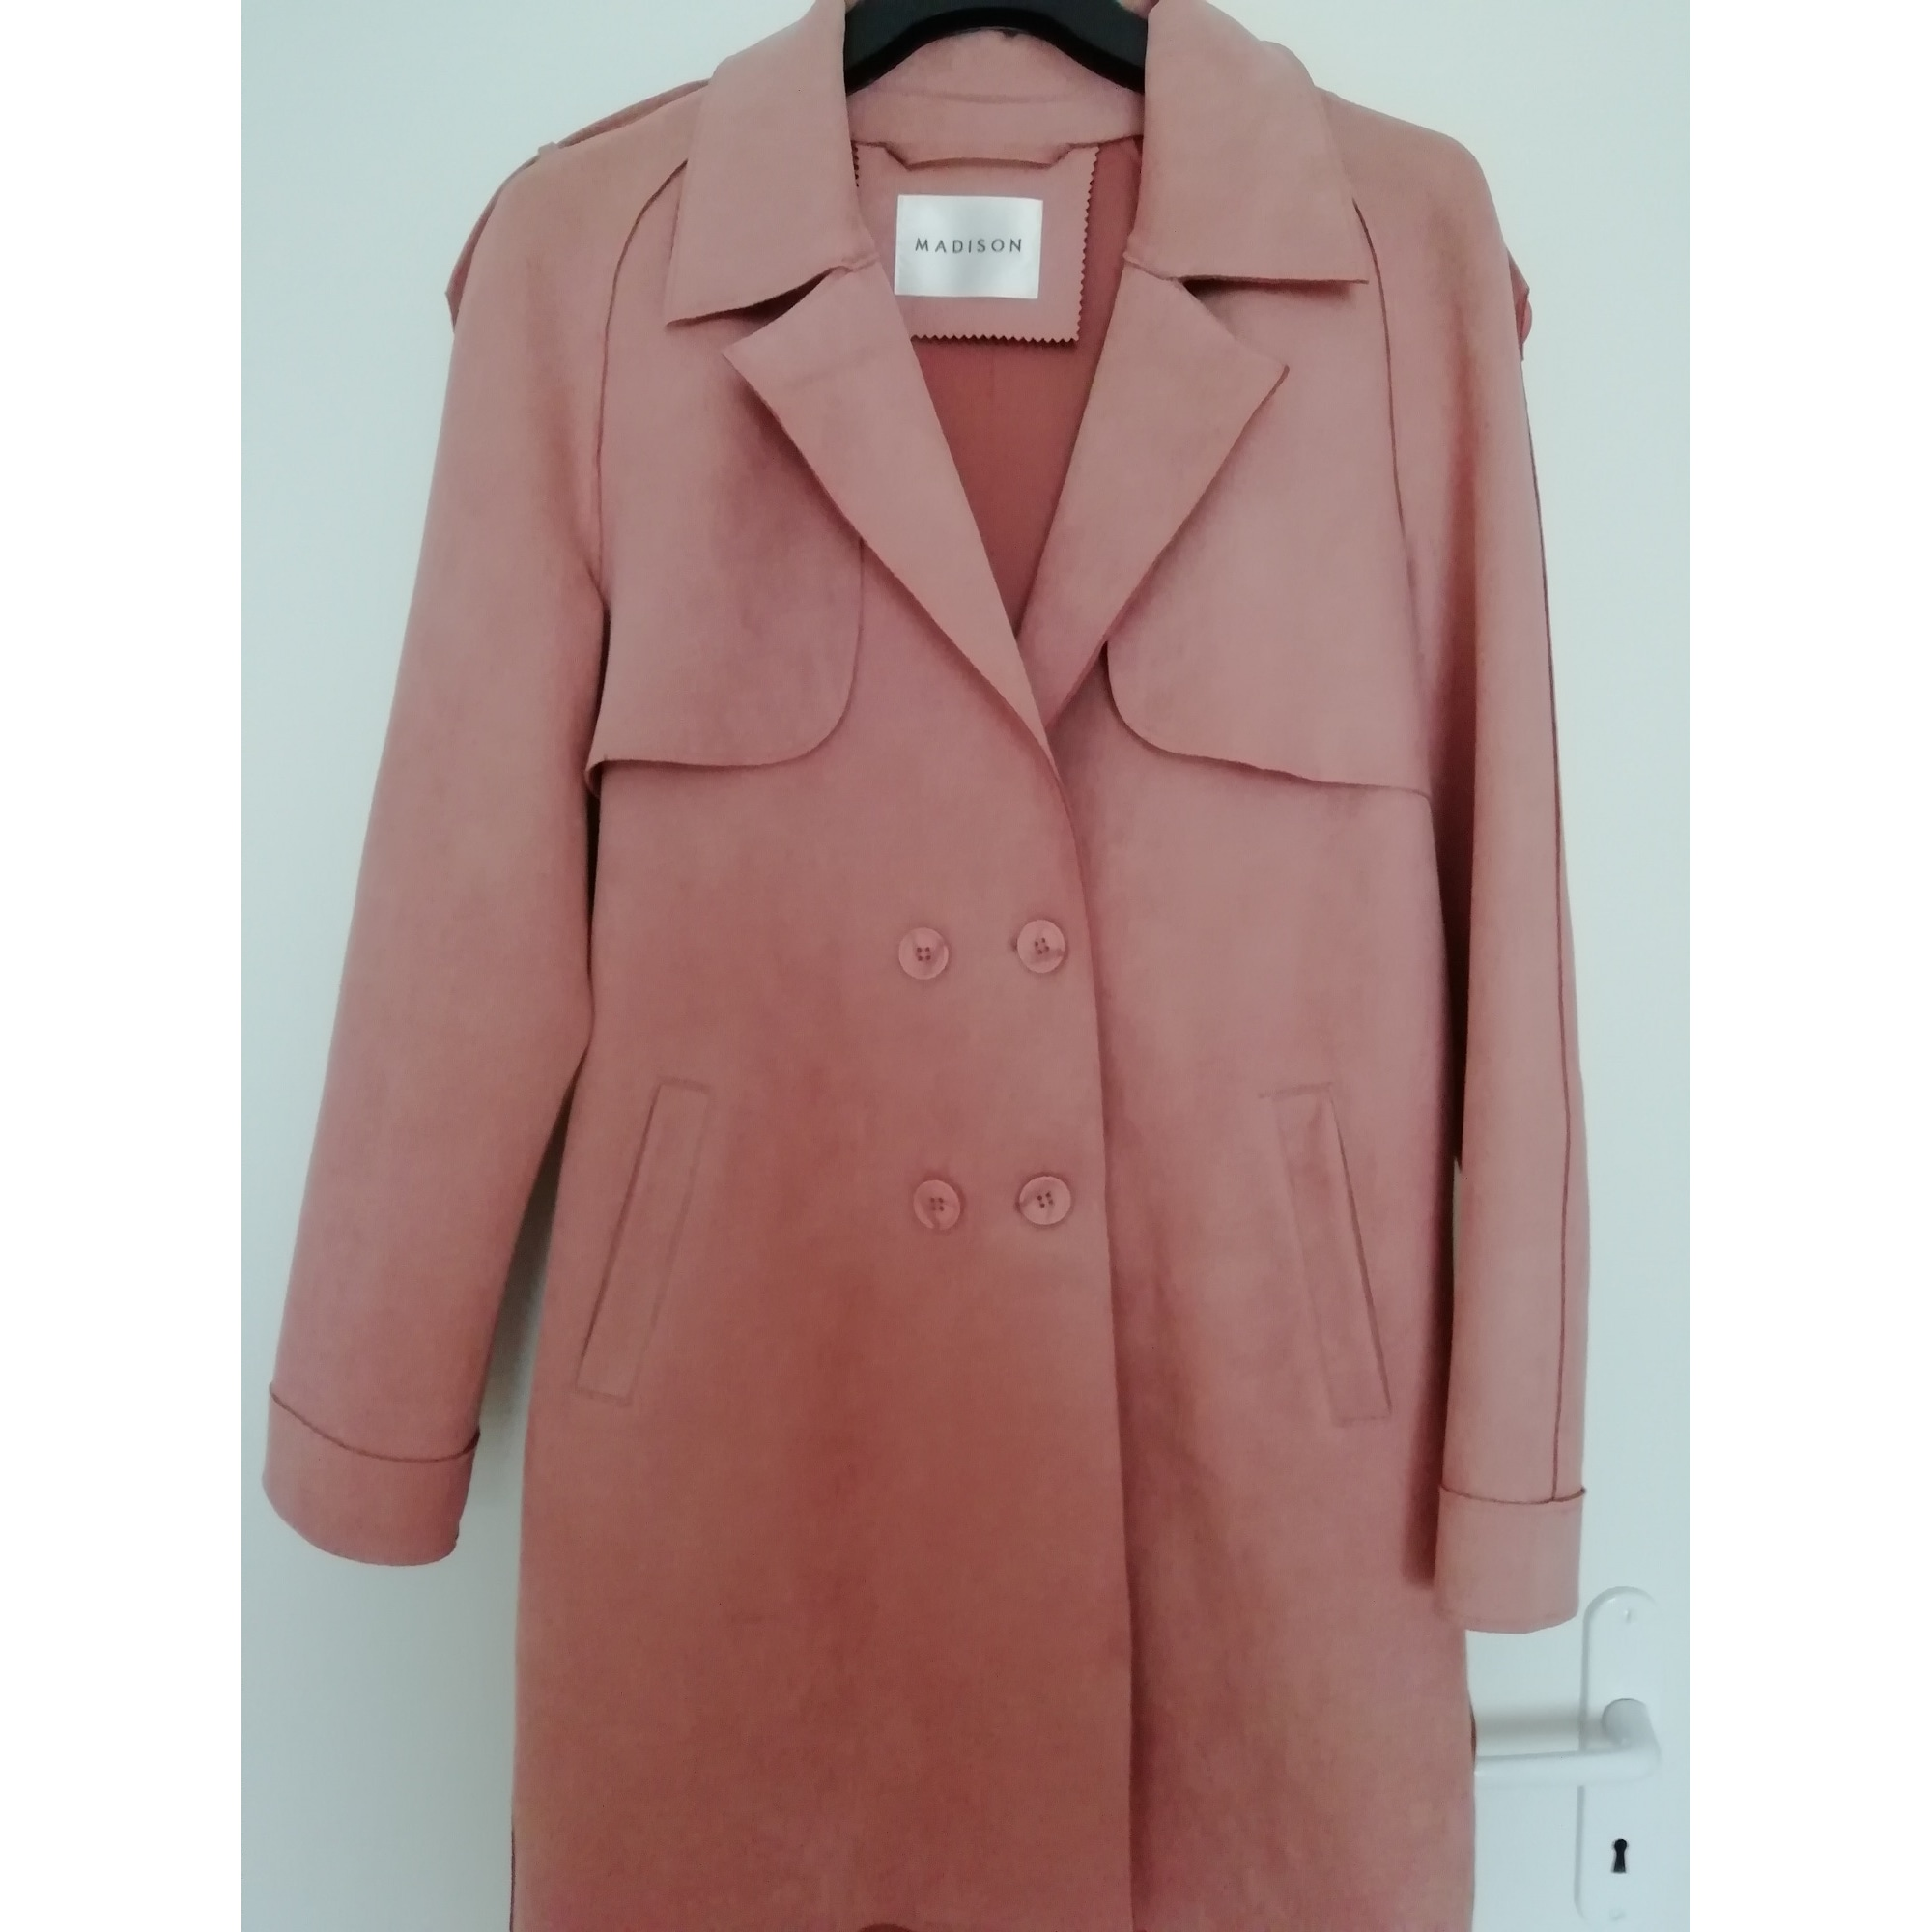 Imperméable, trench MADISON Rose, fuschia, vieux rose